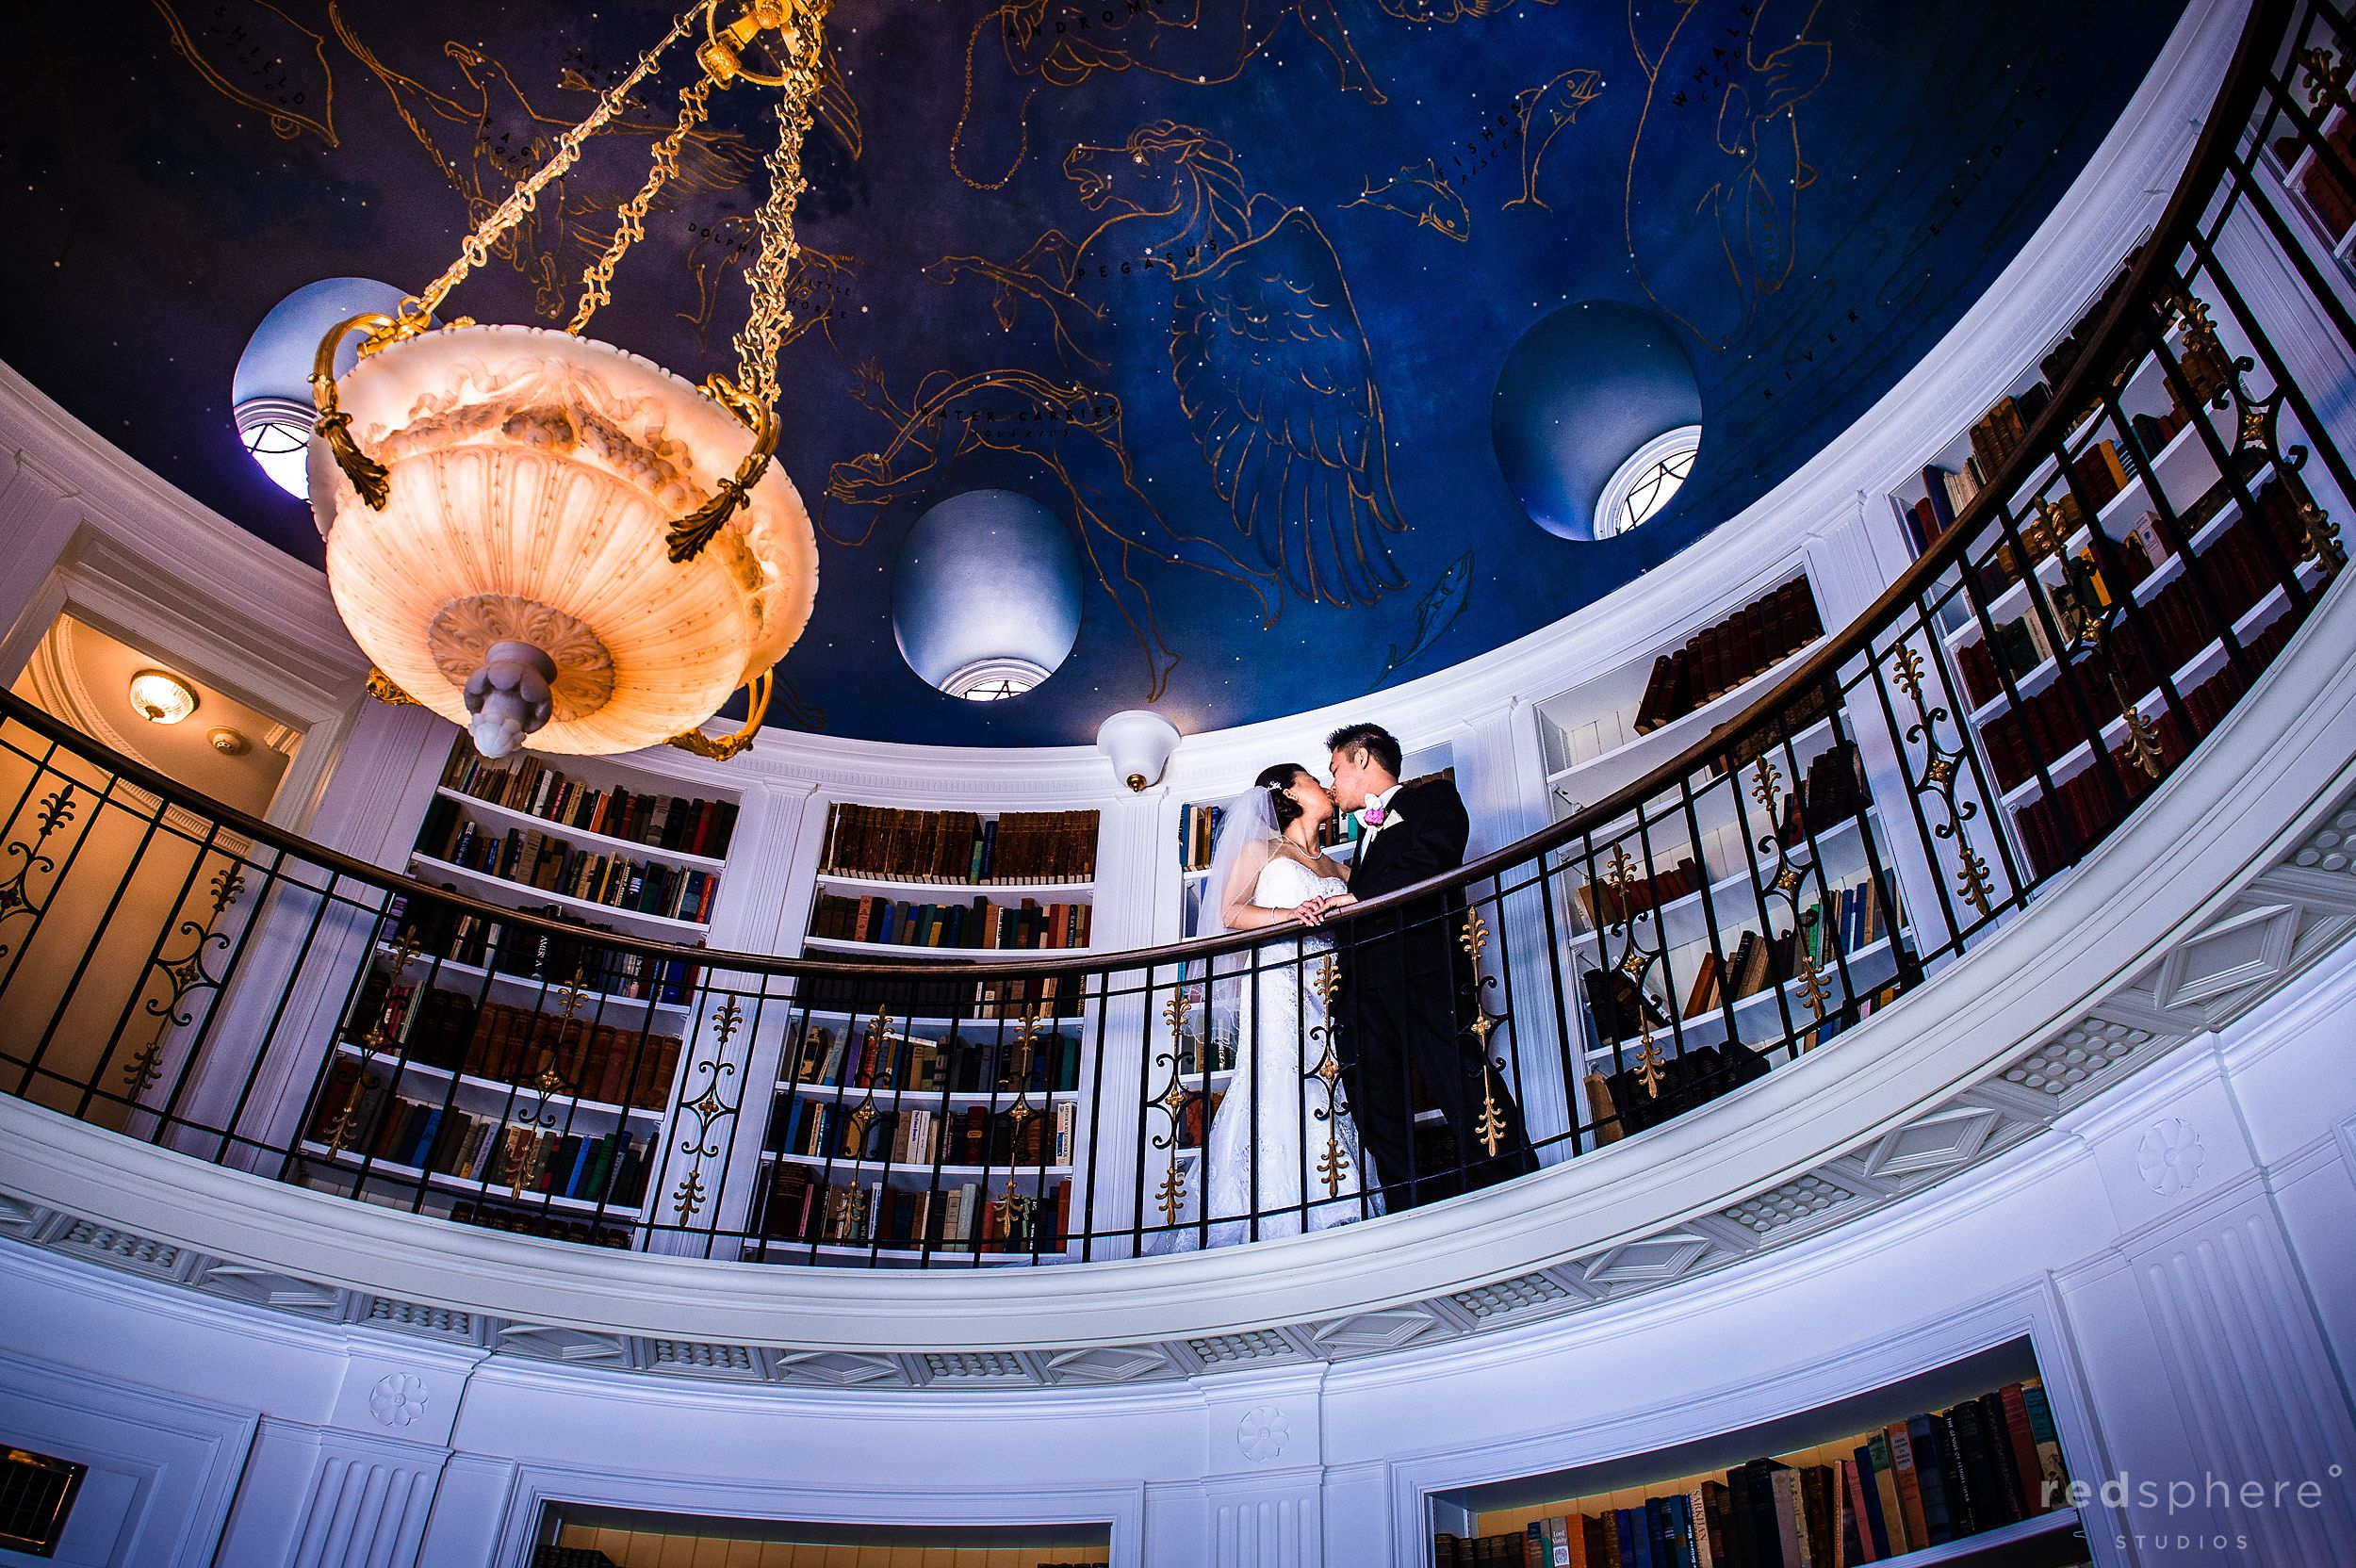 Bride and Groom Share a Special Kiss at the Luxury Fairmont Hotel, Starry Night